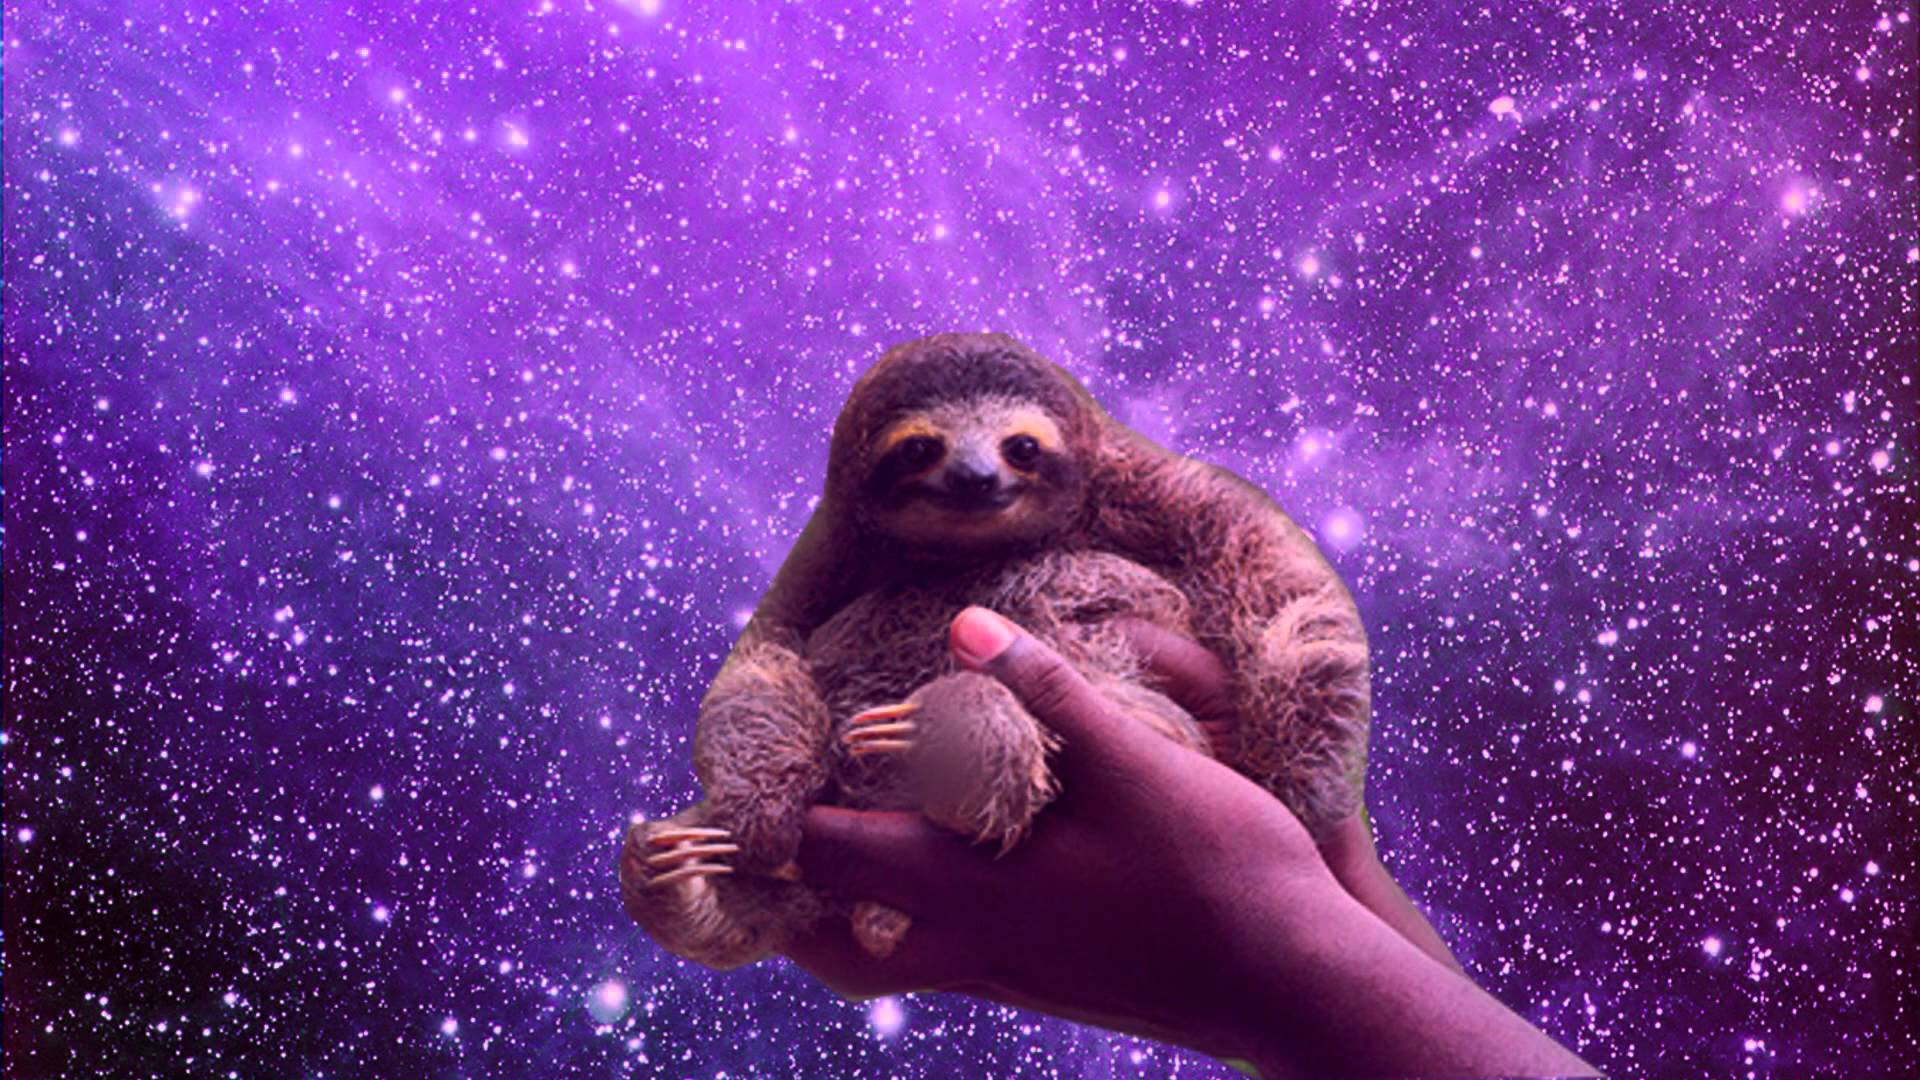 Sloths in Space 1920x1080